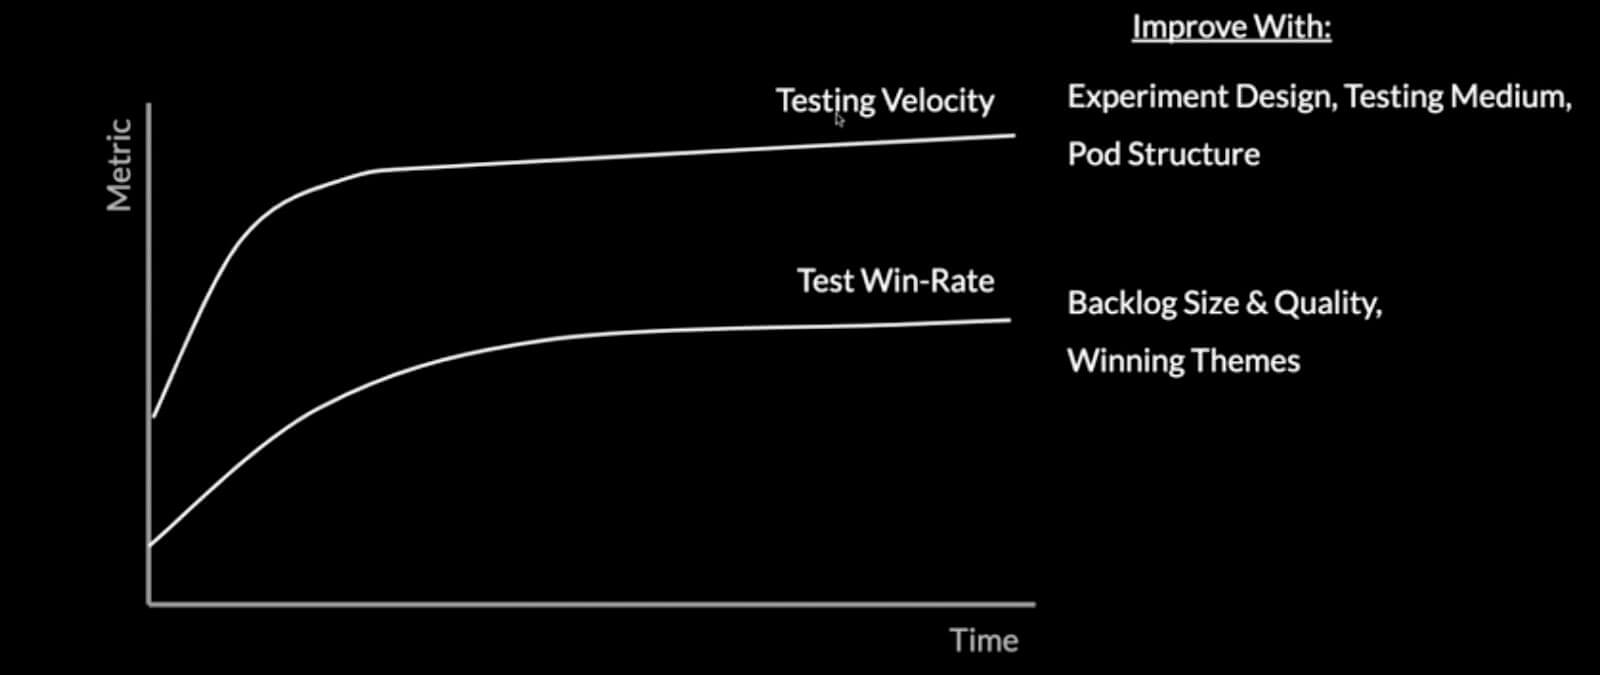 testing velocity and win-rate